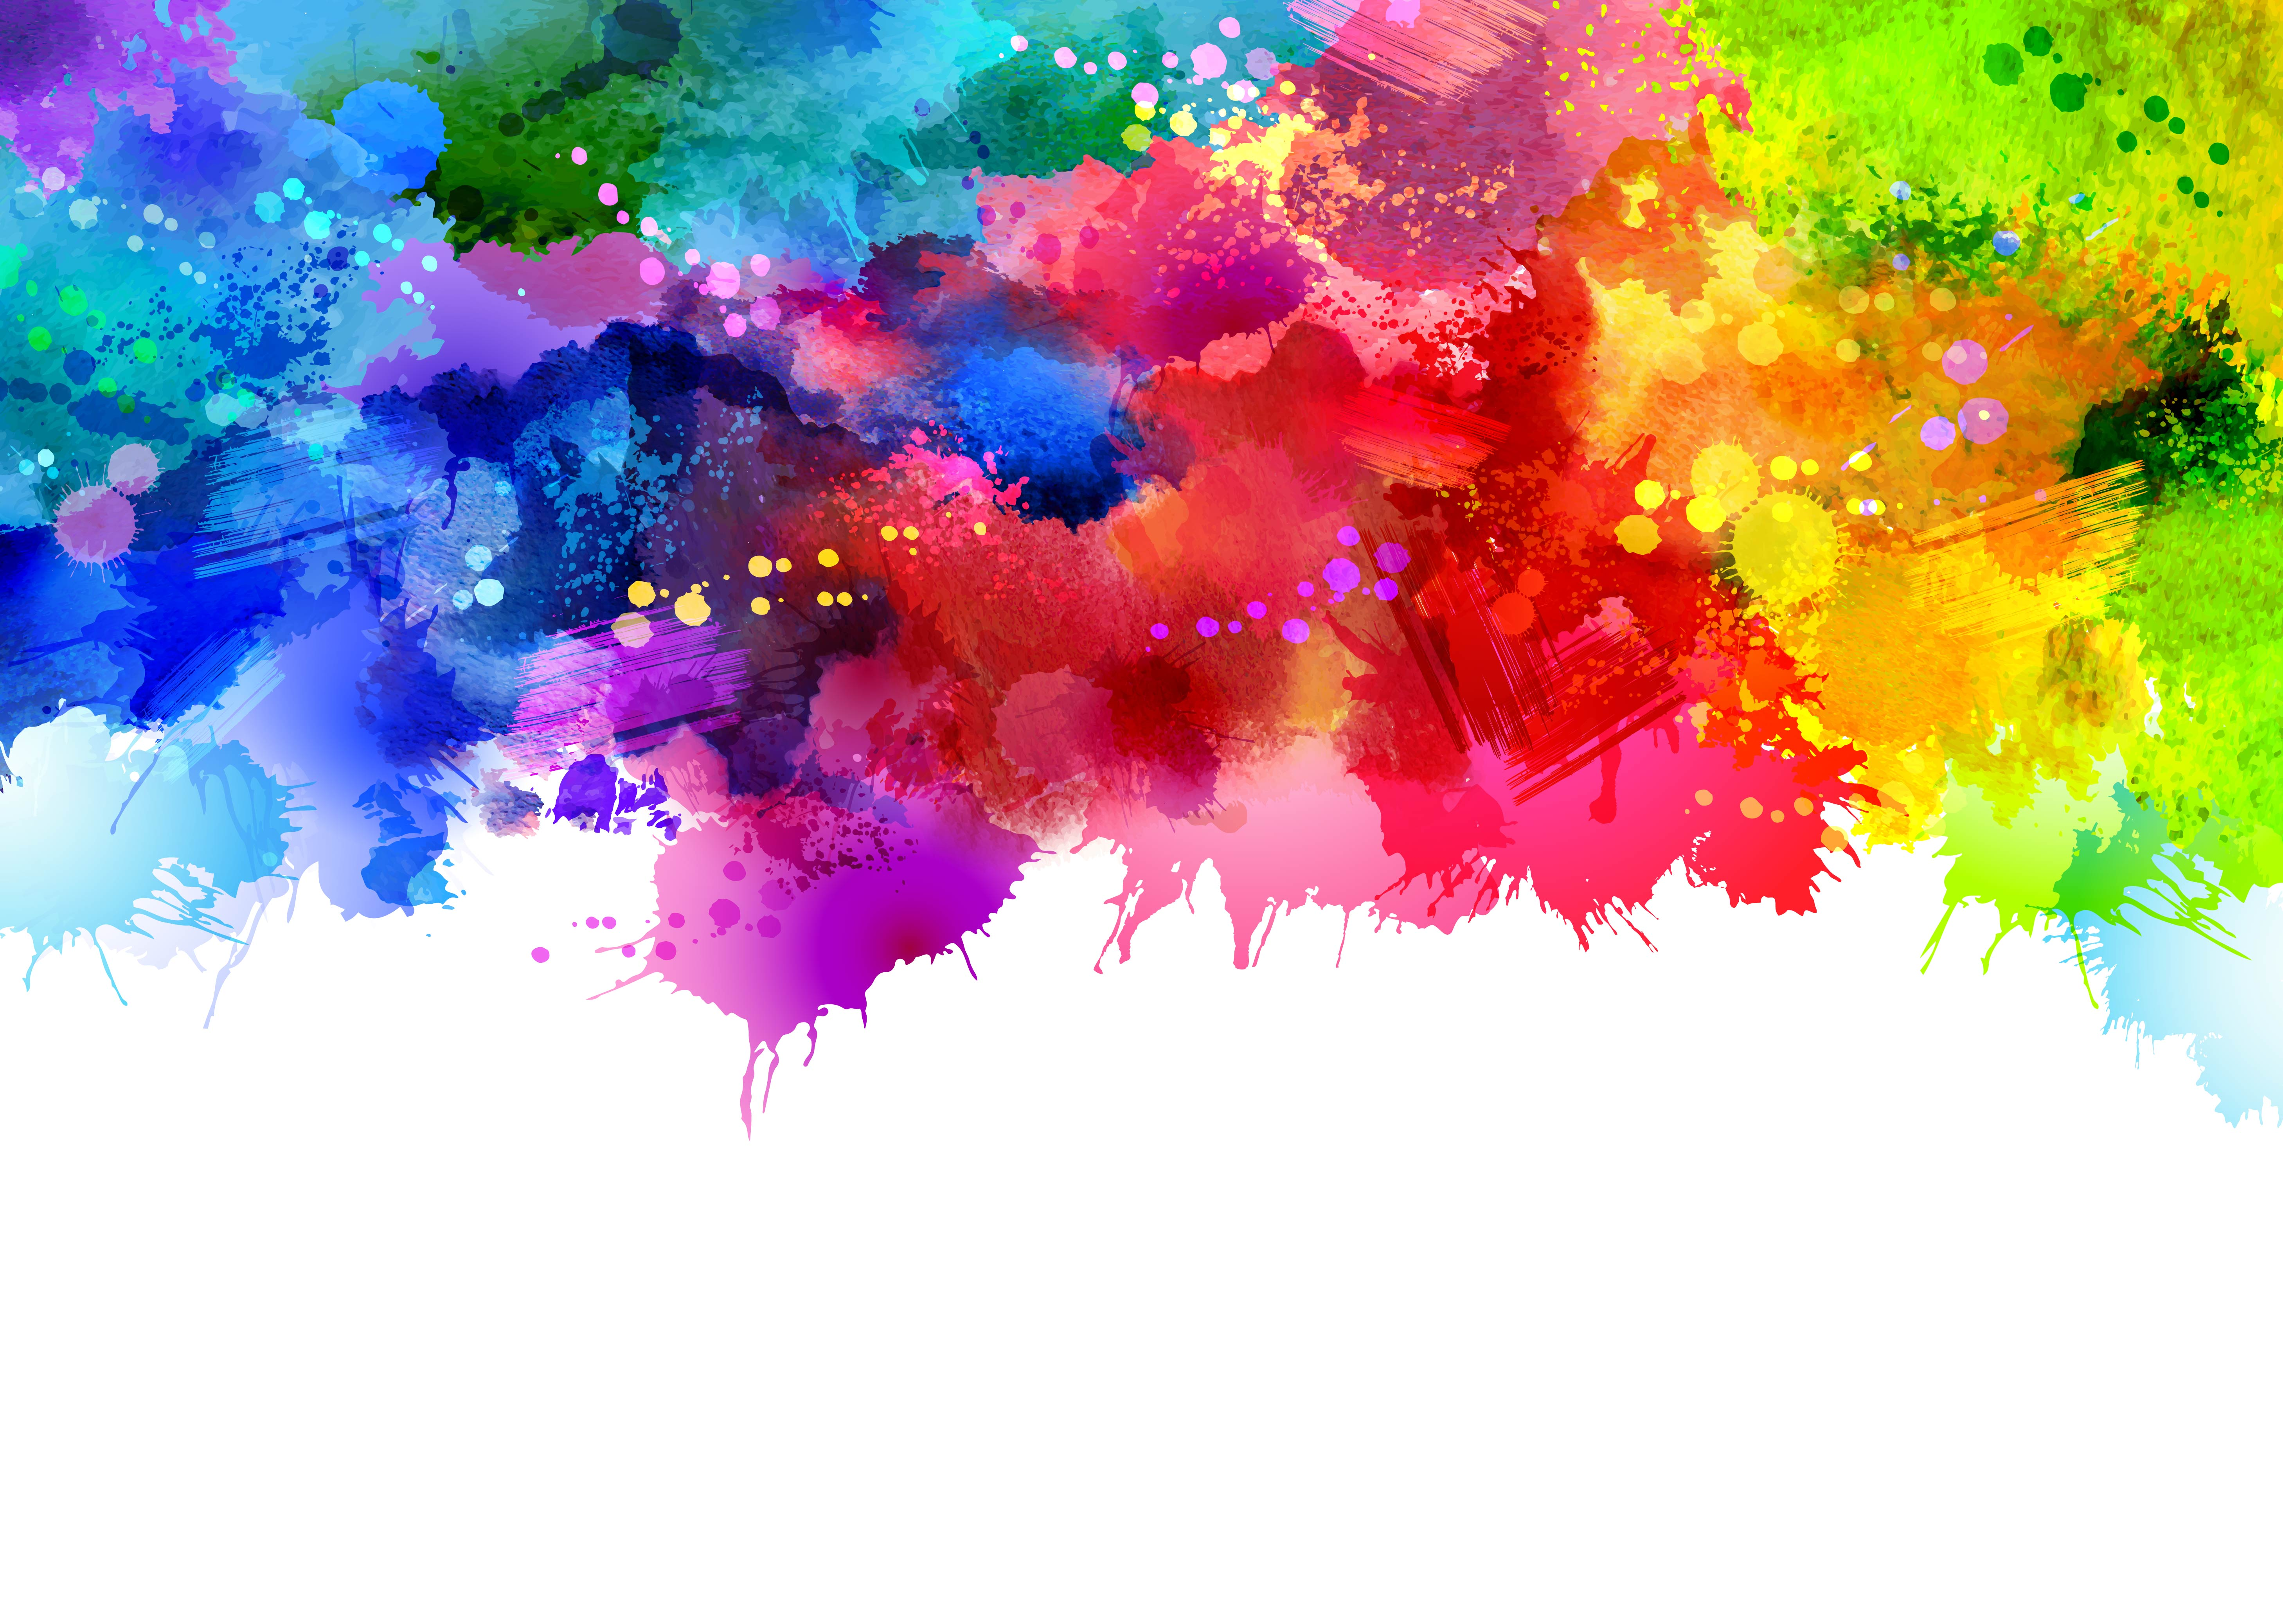 Fall Bird Wallpaper Colorful Watercolor Ink Splashes Vector Background Vector